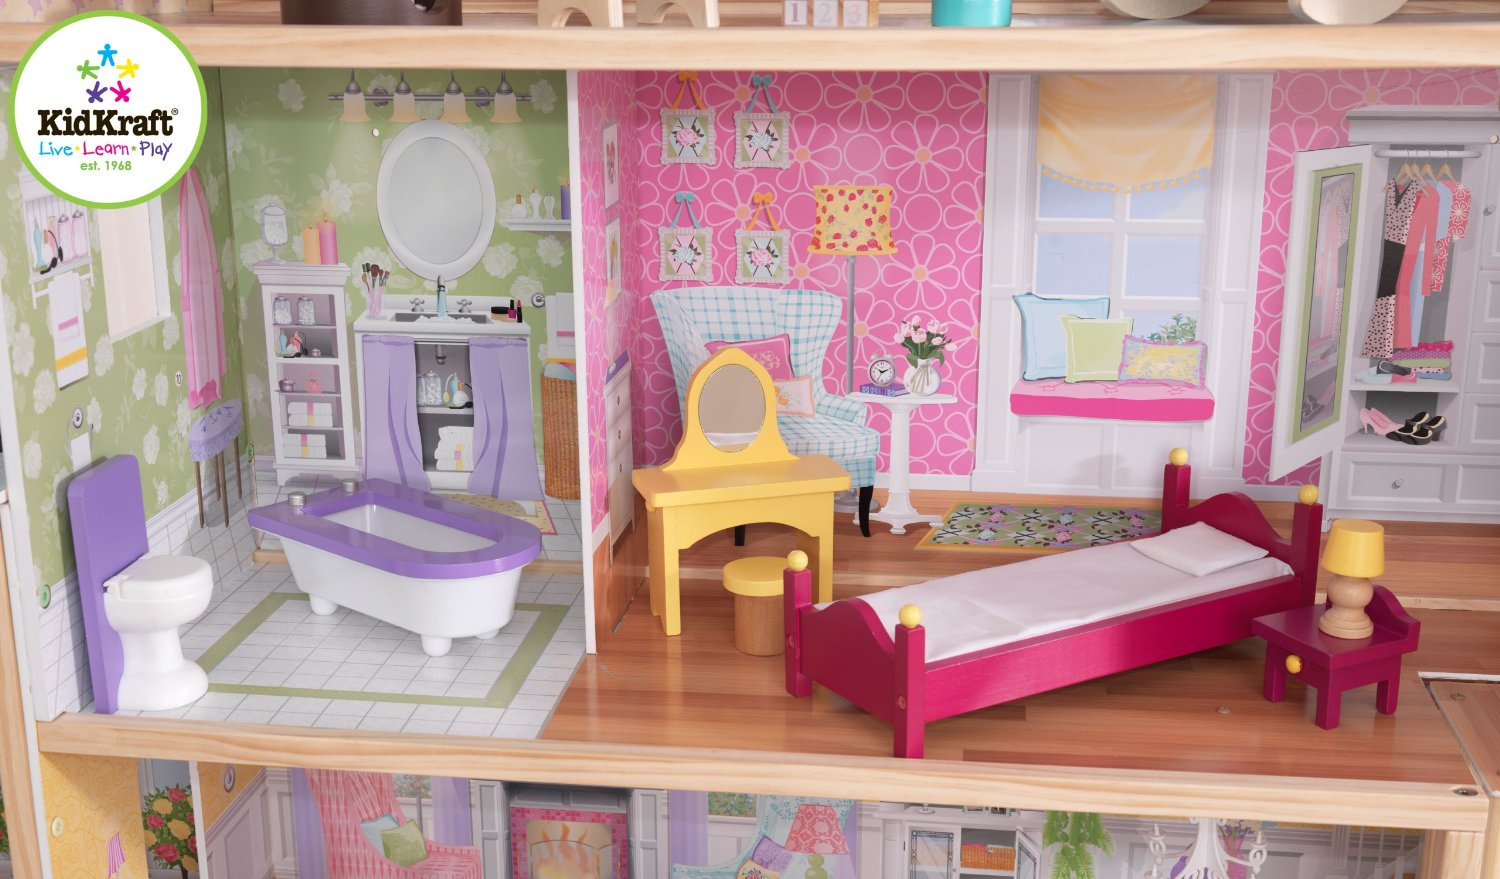 Lovely Kidkraft Majestic Mansion Dollhouse 65252 For Kids Play Room Furniture Ideas: Wonderful Kidkraft Majestic Mansion Dollhouse 65252 Made Of Wood For Kids Room Furniture Ideas